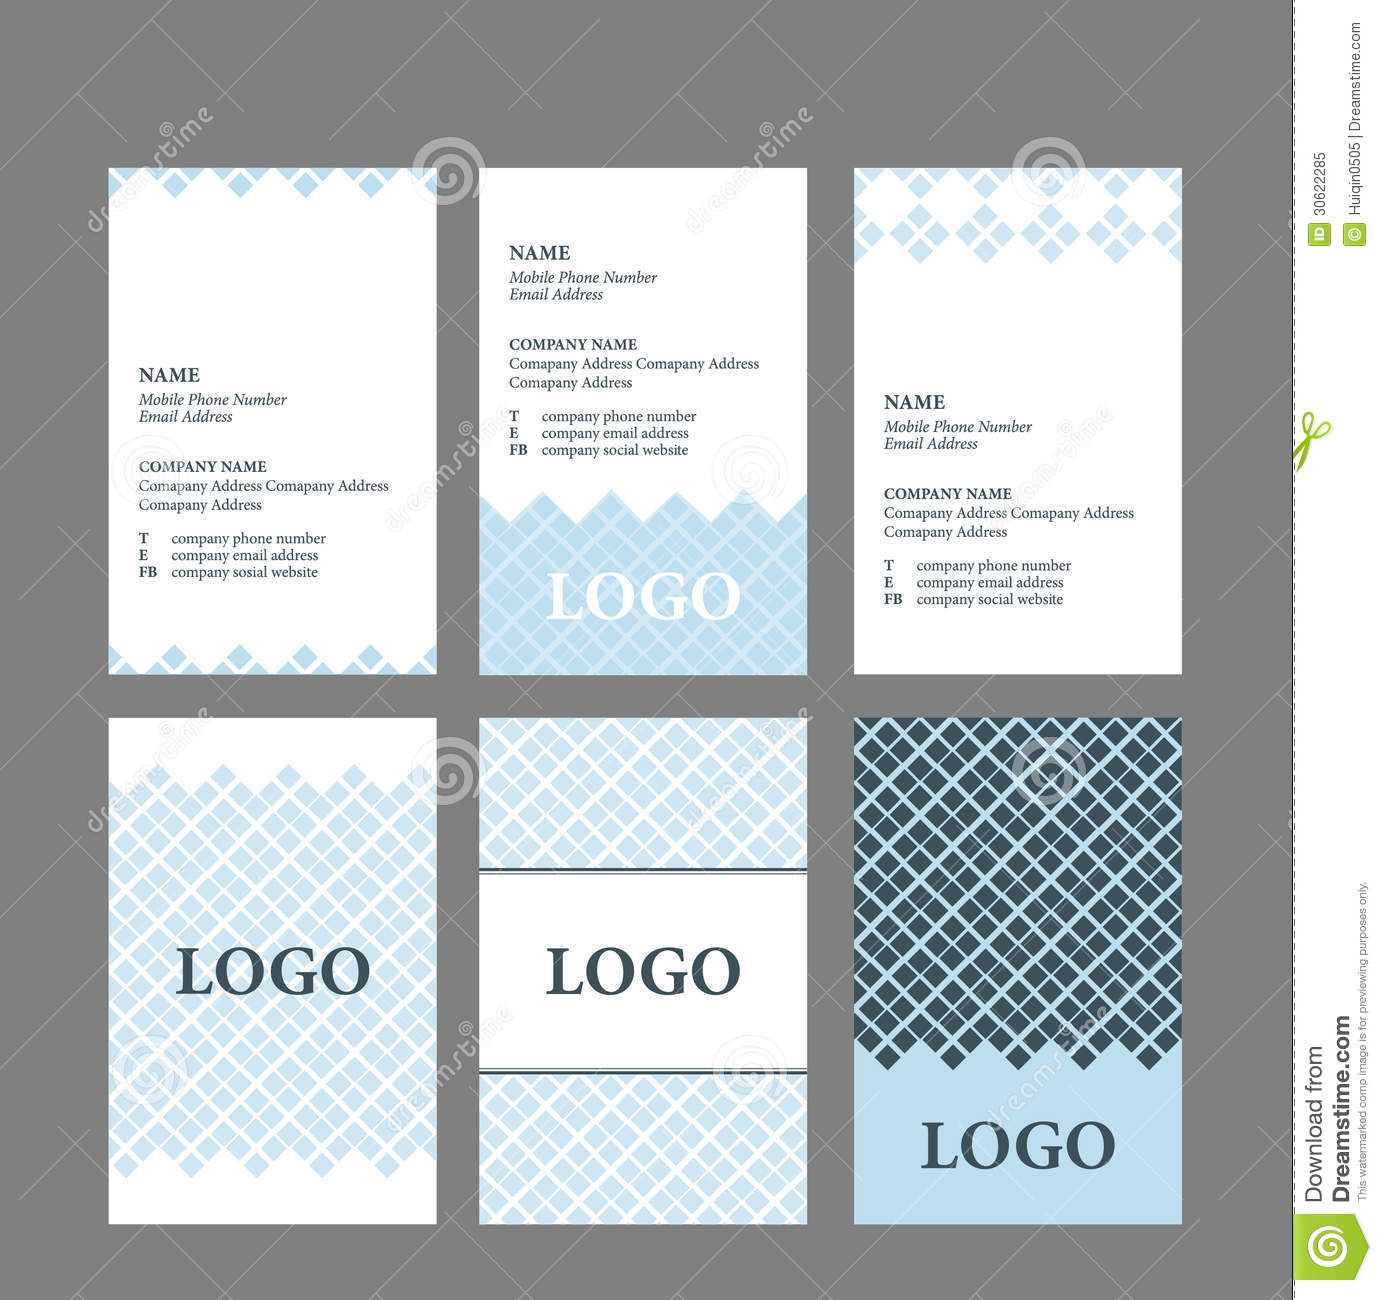 Lovely Business Cards Baby Designs Images - Card Design And Card Template CL33